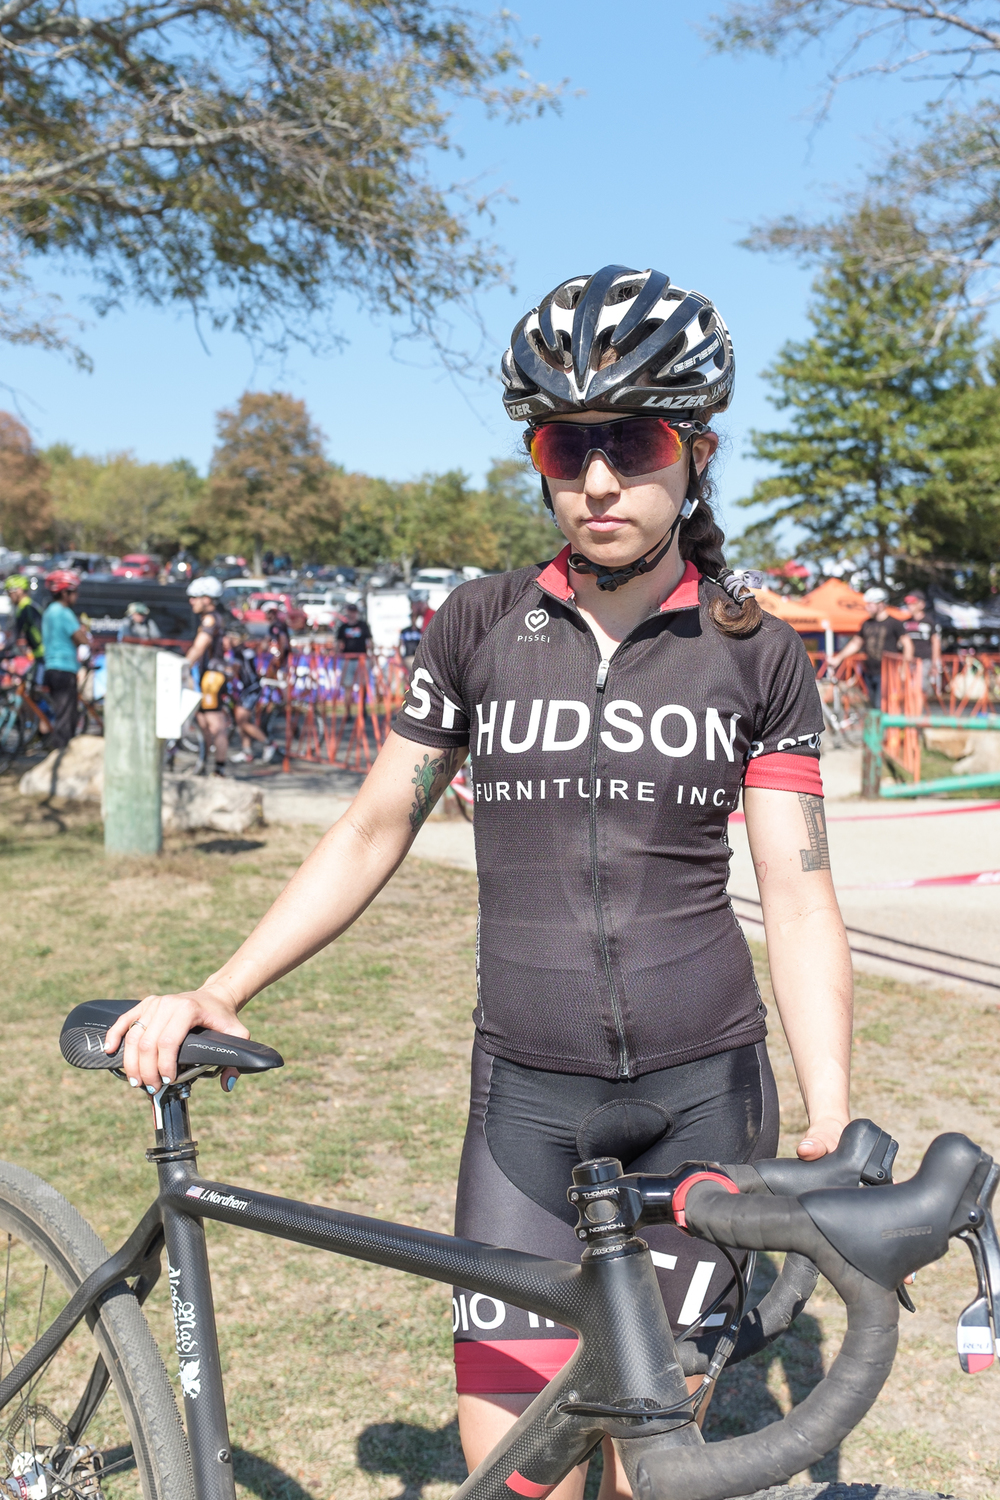 141009_Cyclocross_Pretty_Damned_Fast_Heather_Jen_Jordan_Rough_edits-23.jpg